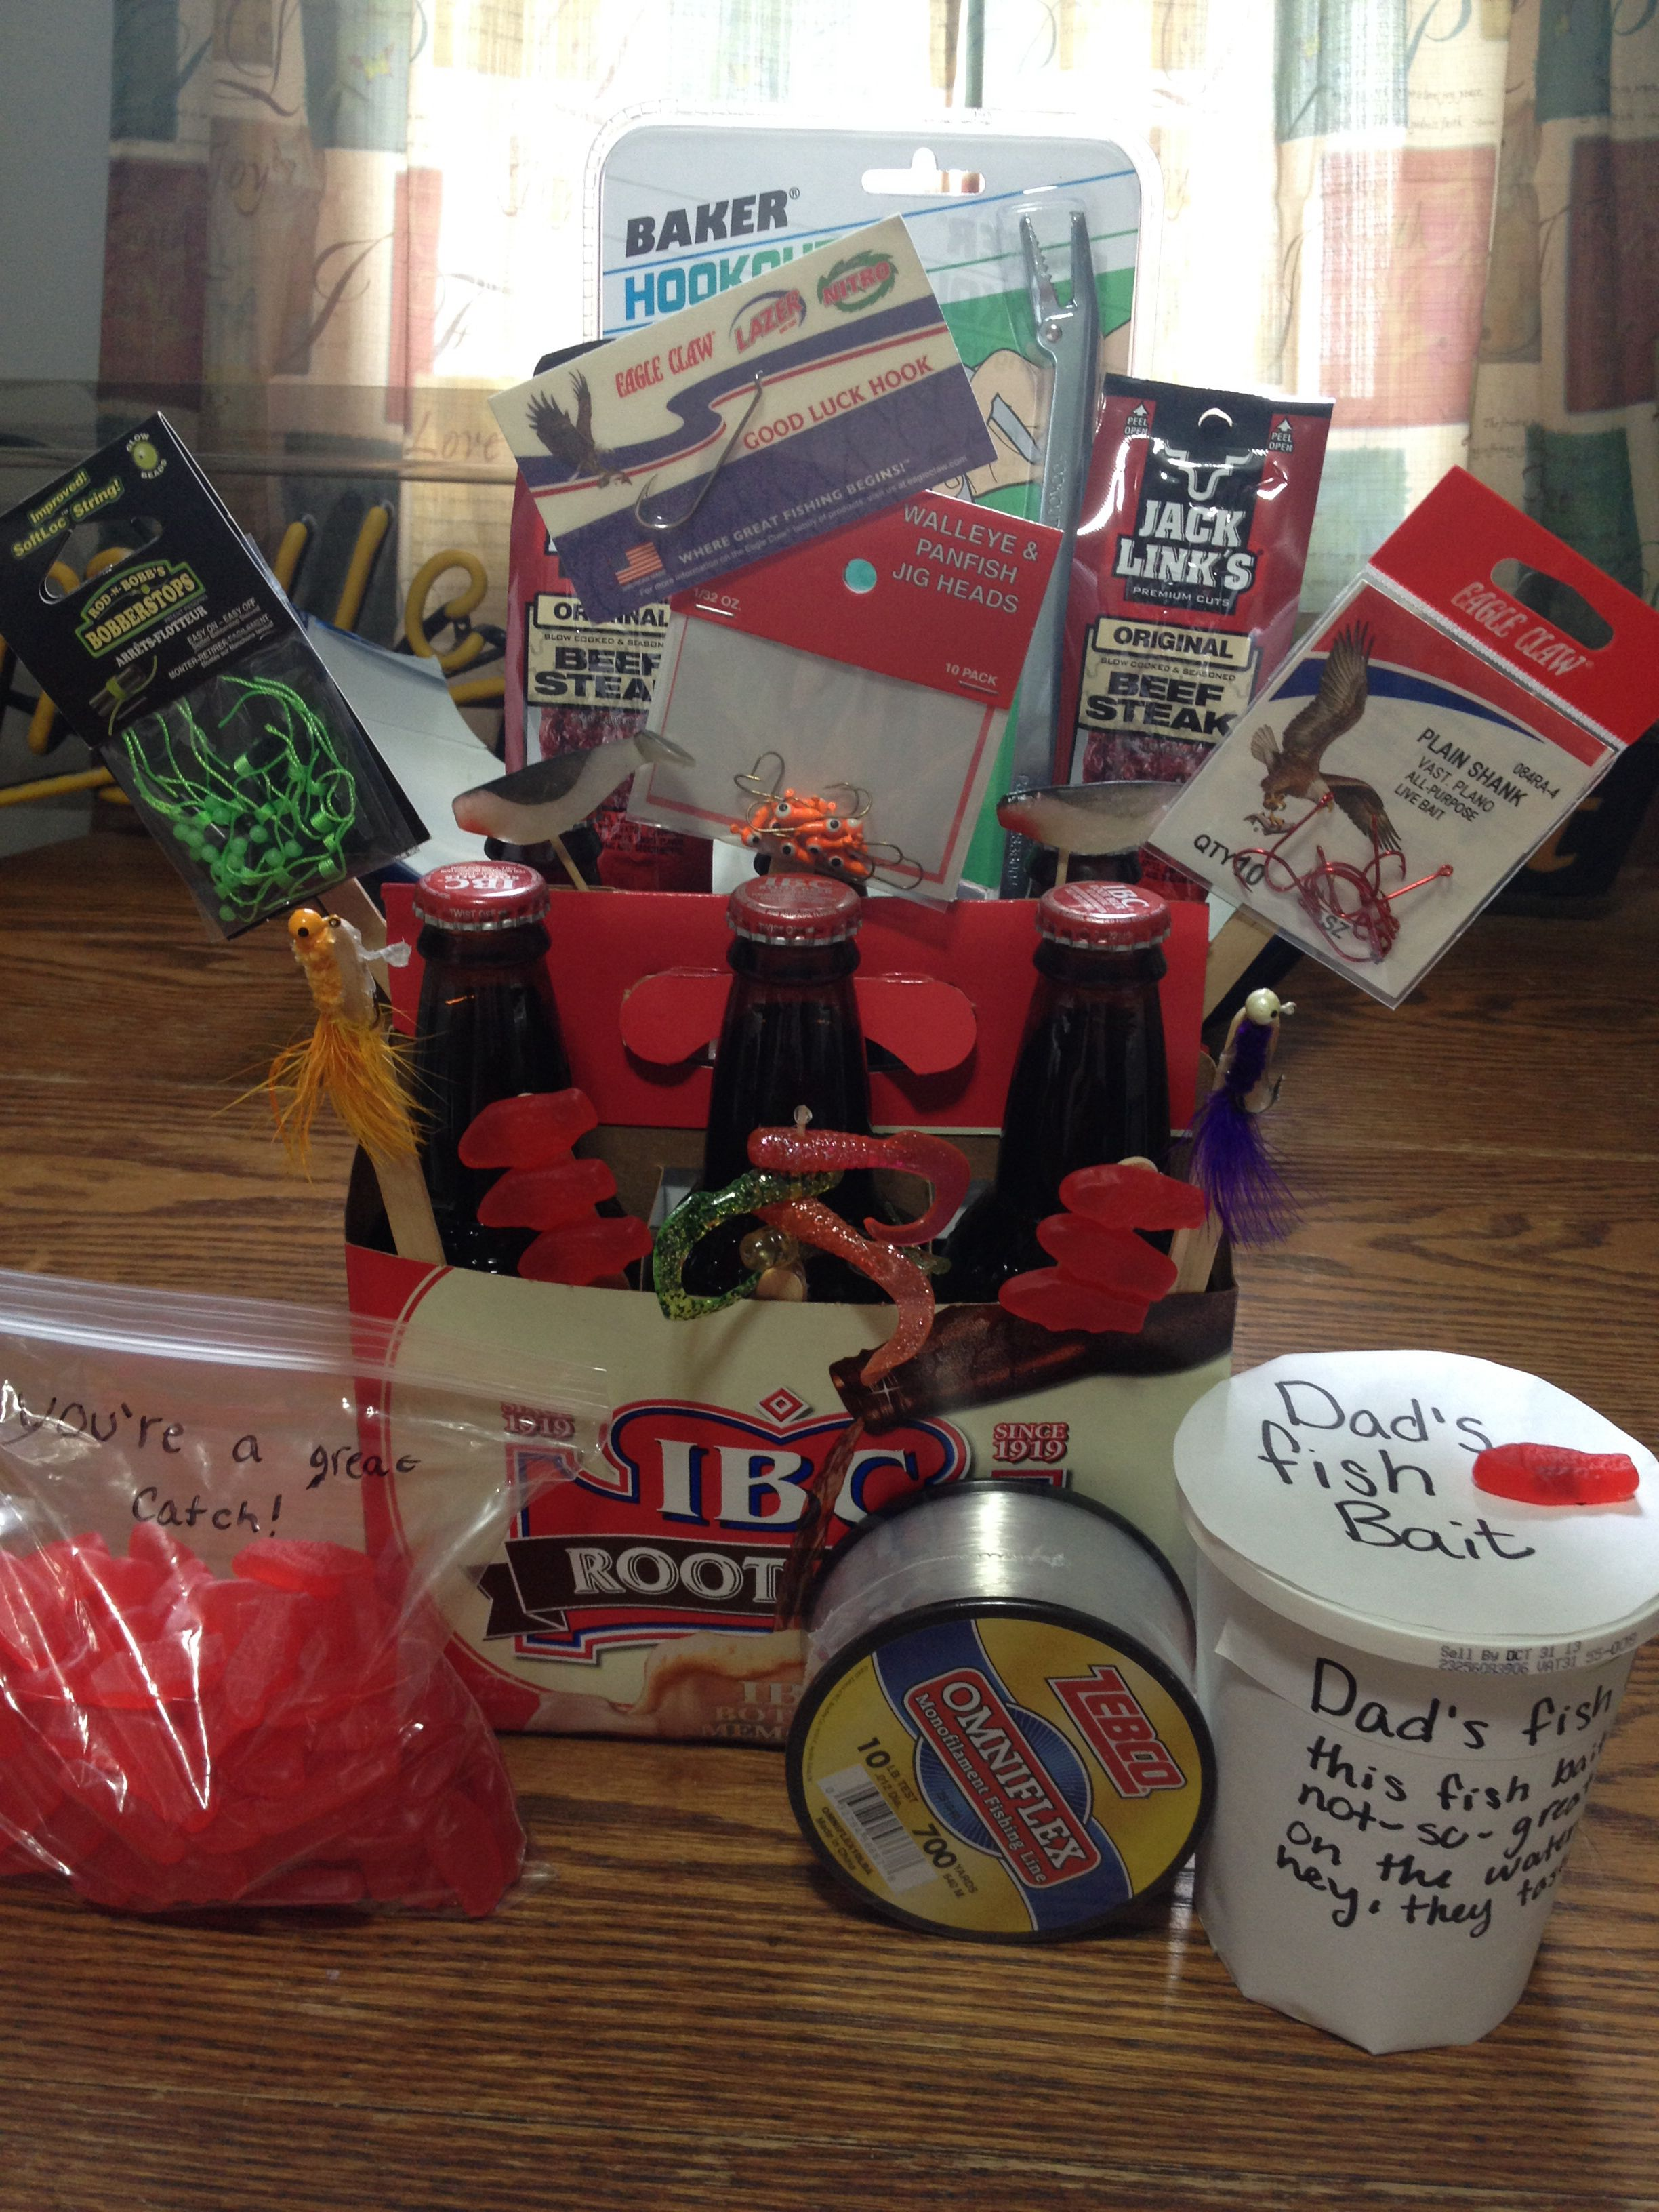 Cute fathers day gift for the fisherman gift basket